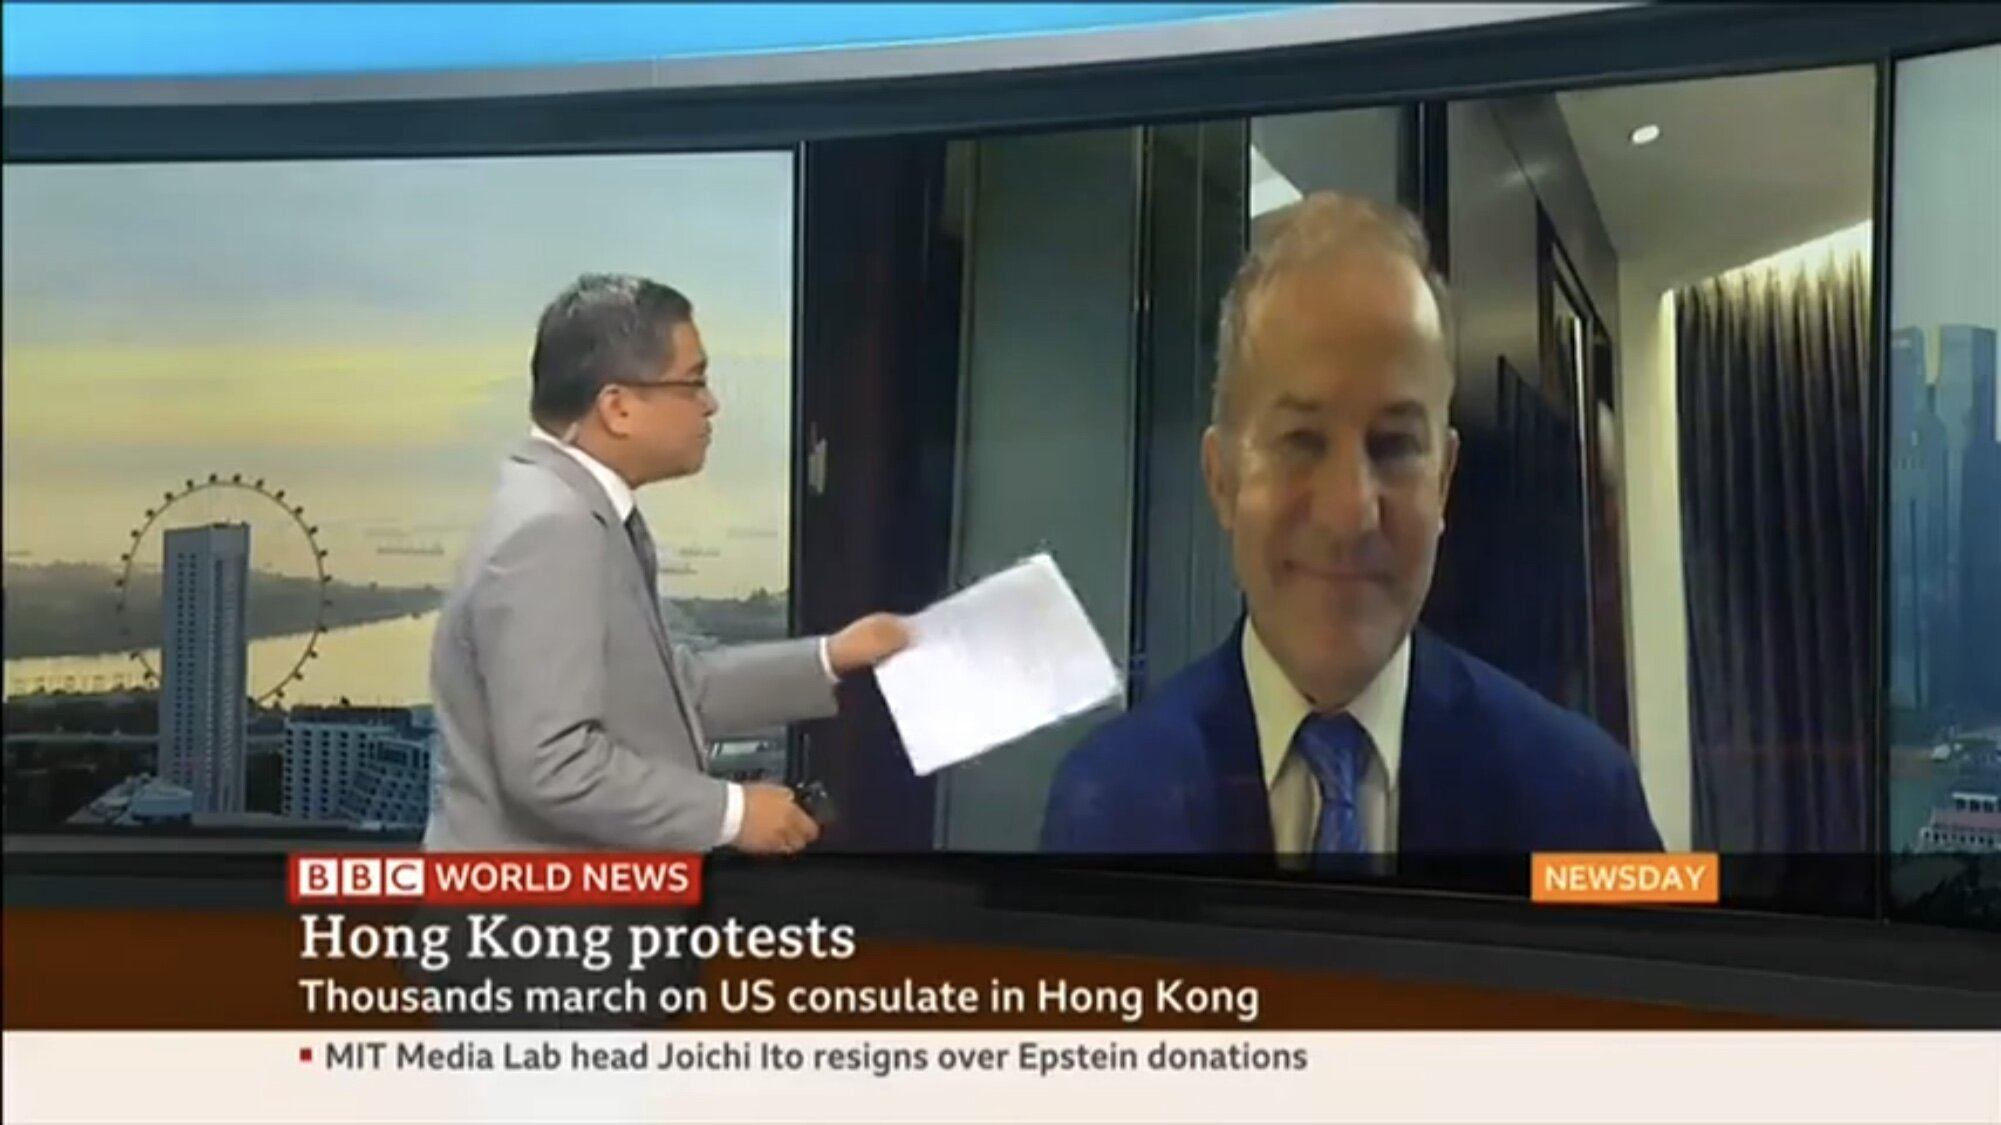 BBC World, September 9, 2019. To view, click   here